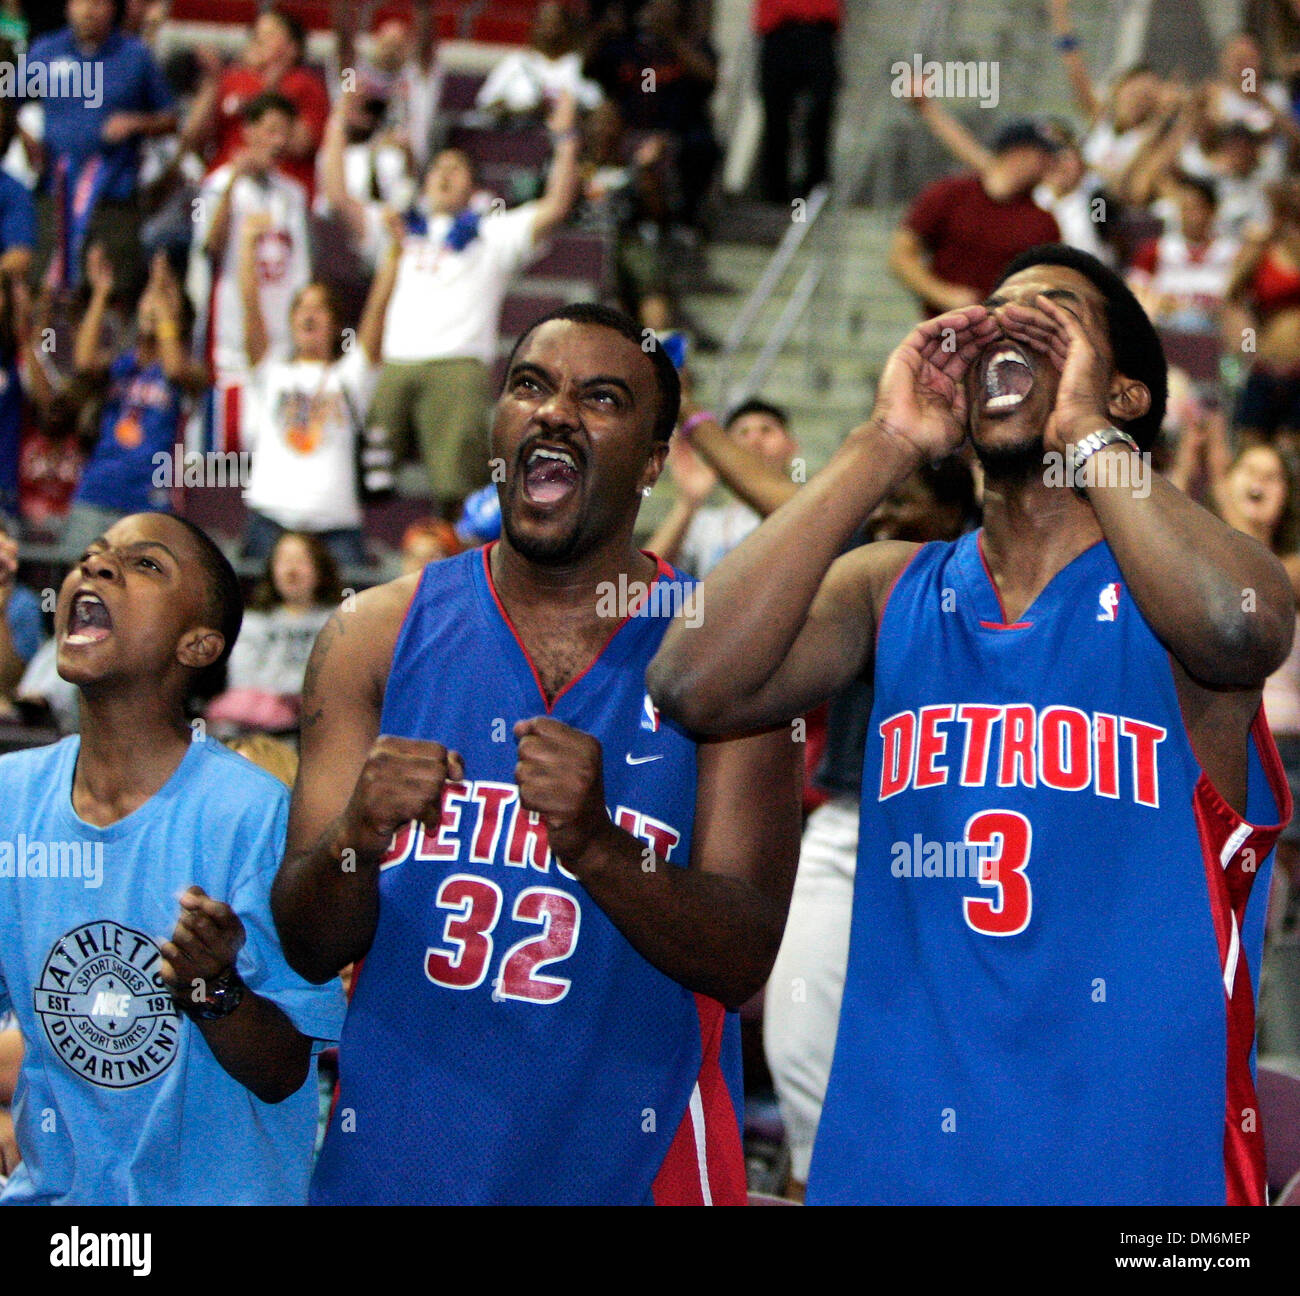 Jun 06, 2005; Auburn Hills, MI, USA; (L-R): DARRIEN BARTON,12, DEMARCUS BARTON, and MICHAEL BELL explode as the Pistons pull ahead in the last seconds.  Pistons fans cheer their team on to an 88-82 win as they watch the action of Game 7 of the Eastern Conference Finals against the Miami Heat on jumbo screens at the Palace  in Auburn Hills, Michigan on June 6, 2005.  Mandatory Credi - Stock Image